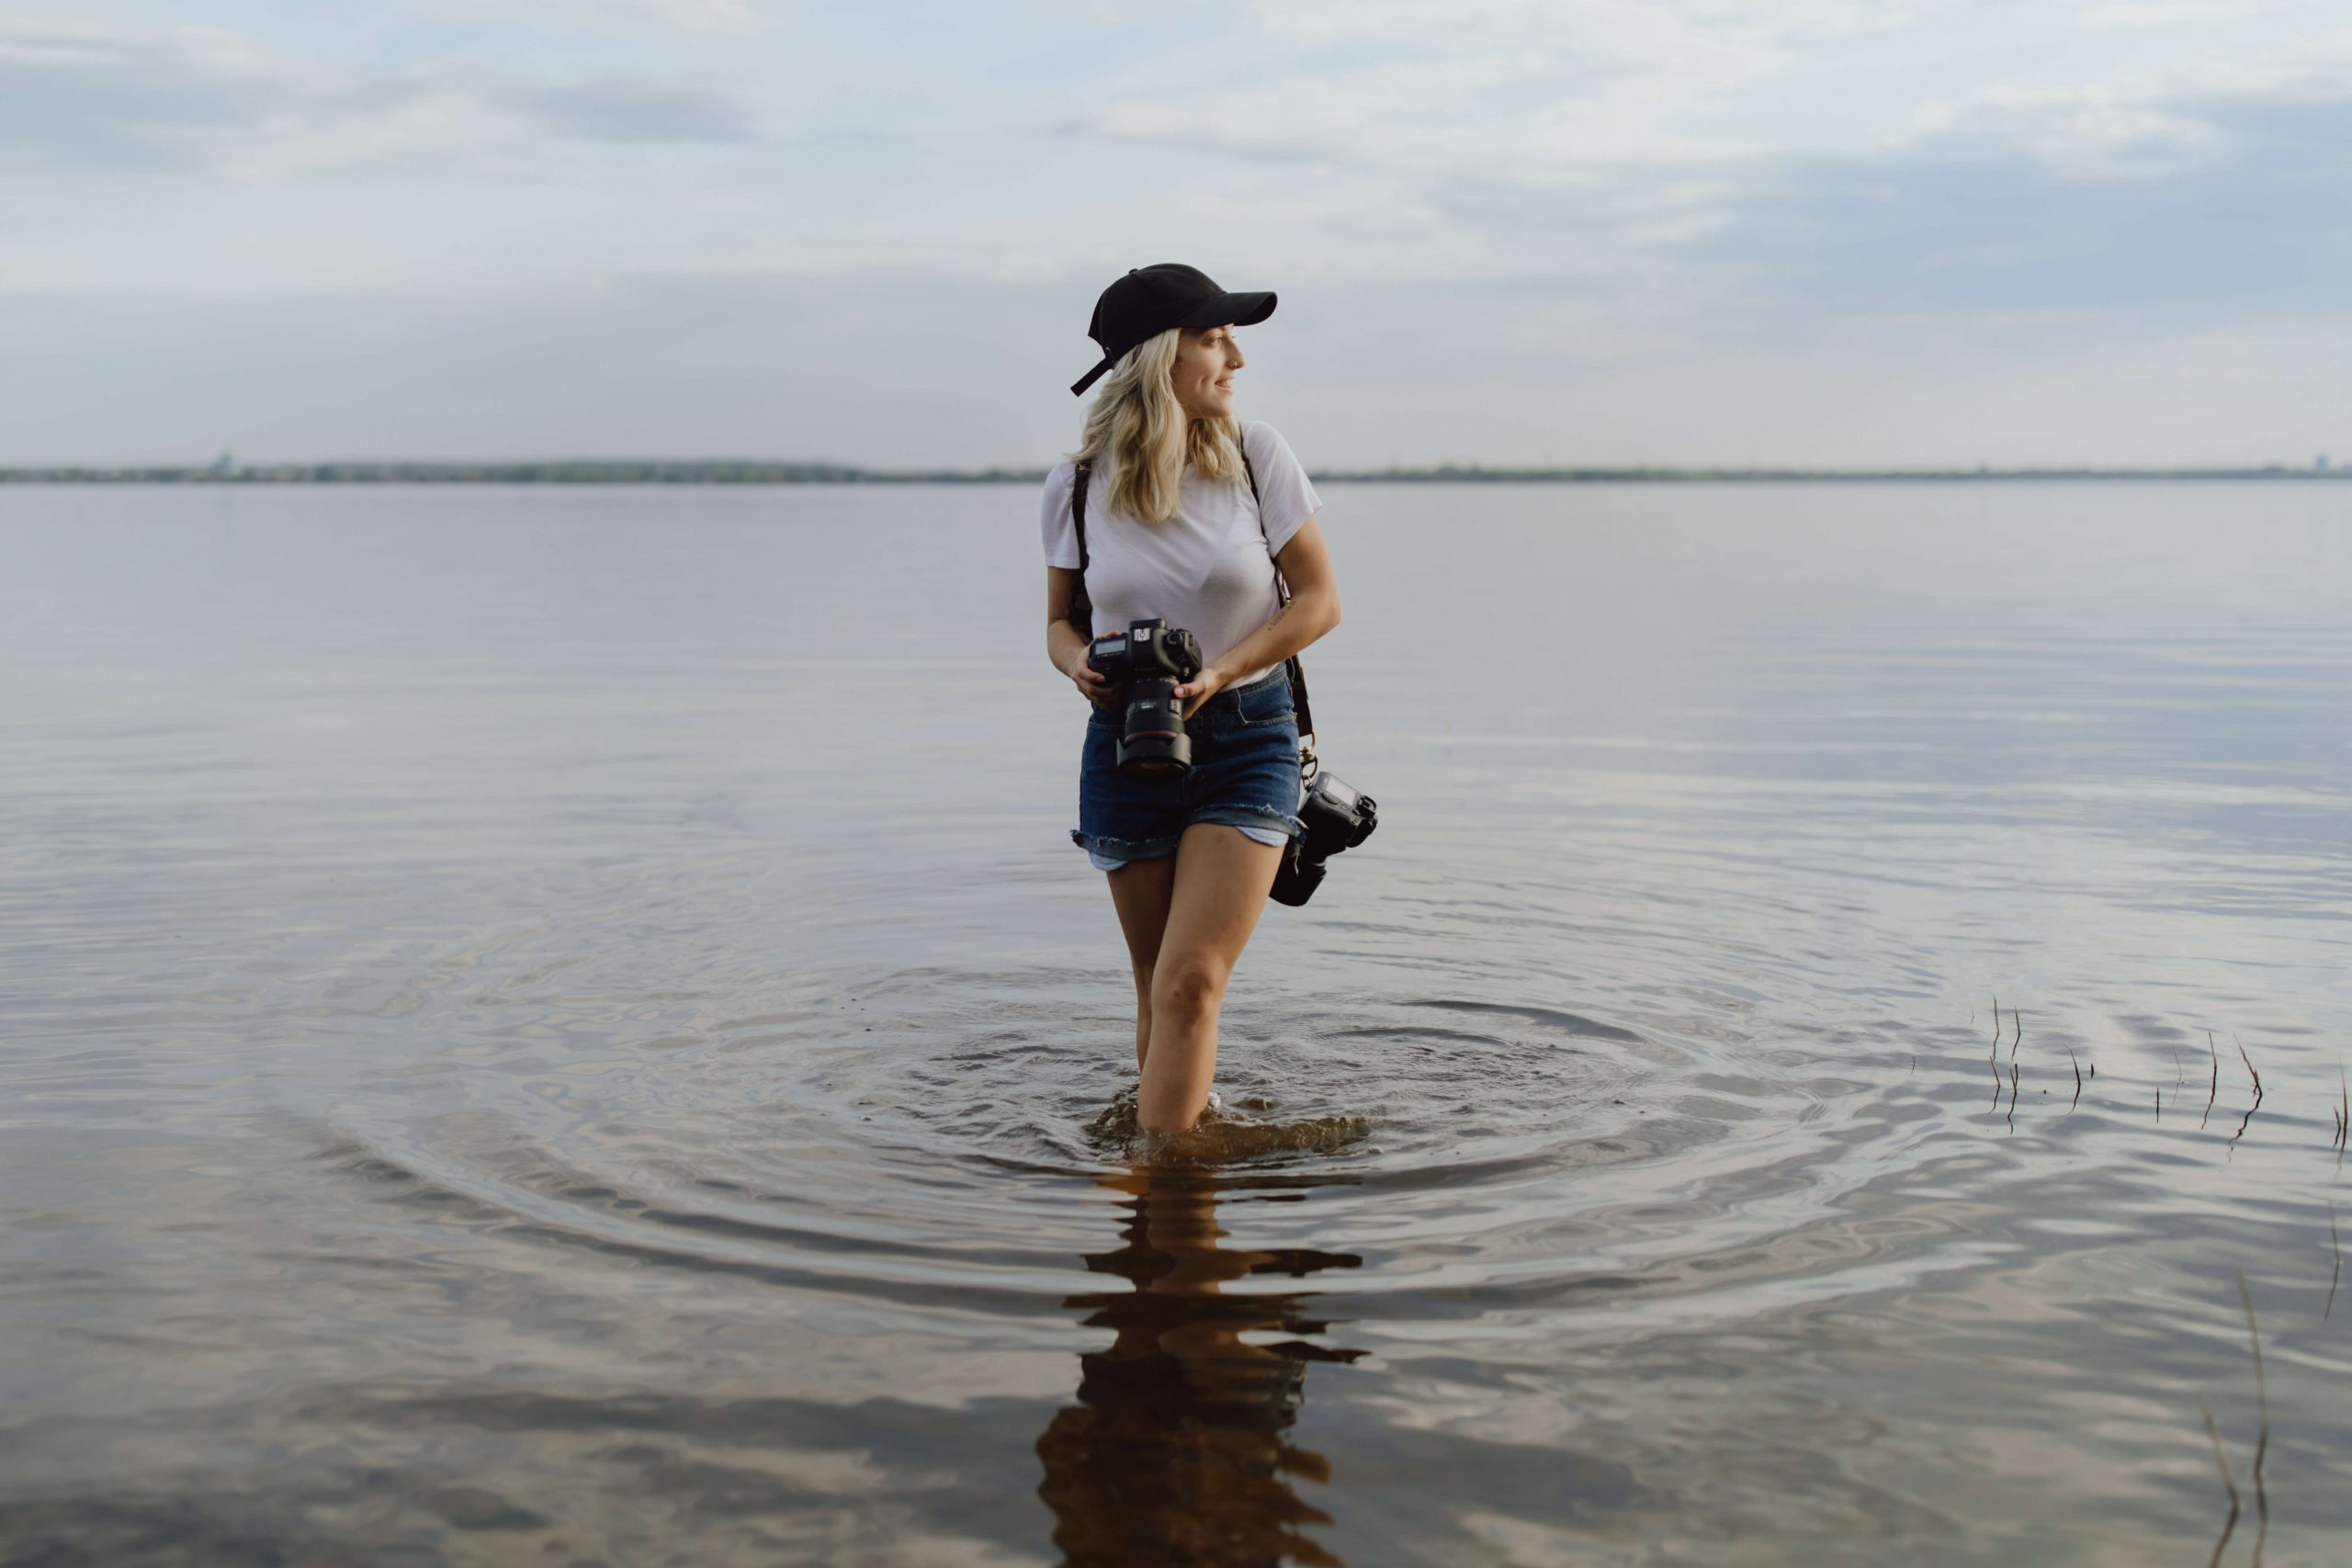 Sonia holding camera in water Sonia V Photo -Documentary Style Candid Photographer - Ottawa Ontario Kemptville Destination Photographer - Authentic Colour Photography - Wedding Photographer - Branding Photographer - Small Business Headshots - Engagement Photos - Family Portraits - Lifestyle